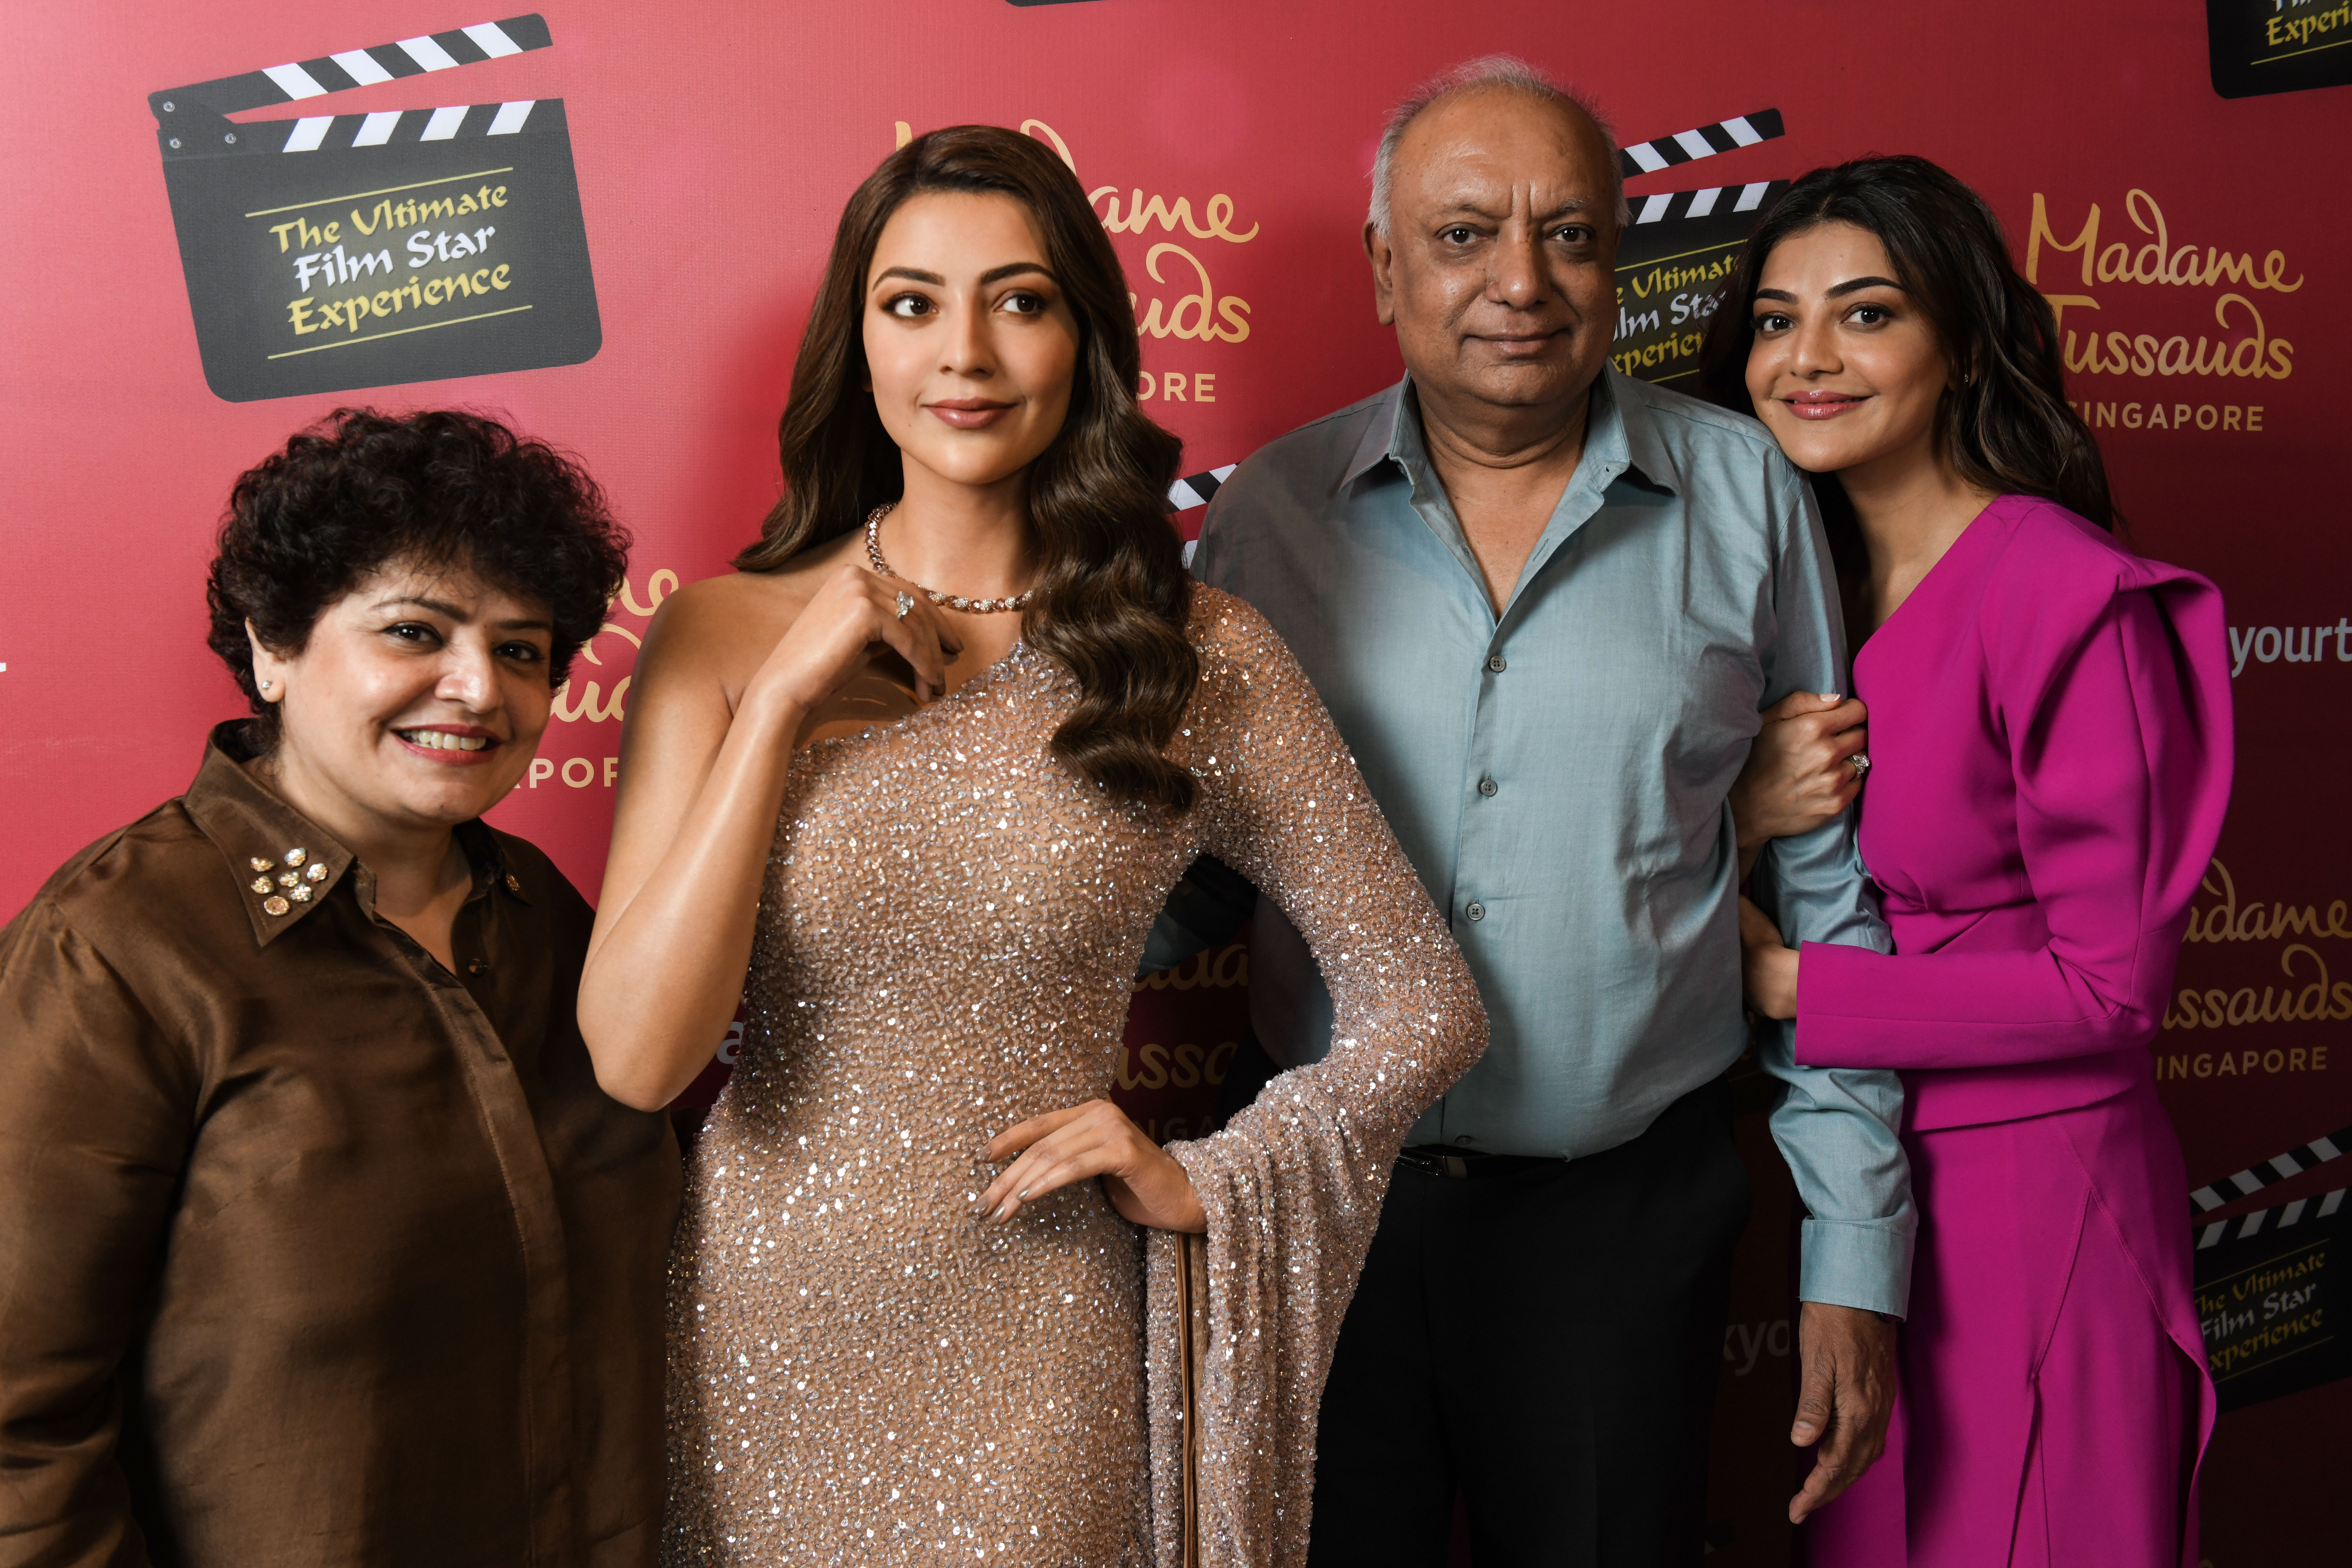 Kajal Aggarwal's dad had tears in his eyes as he and her mom posed with her newly unveiled wax figure at Madame Tussauds Singapore. Photo Courtesy: Madame Tussauds Singapore